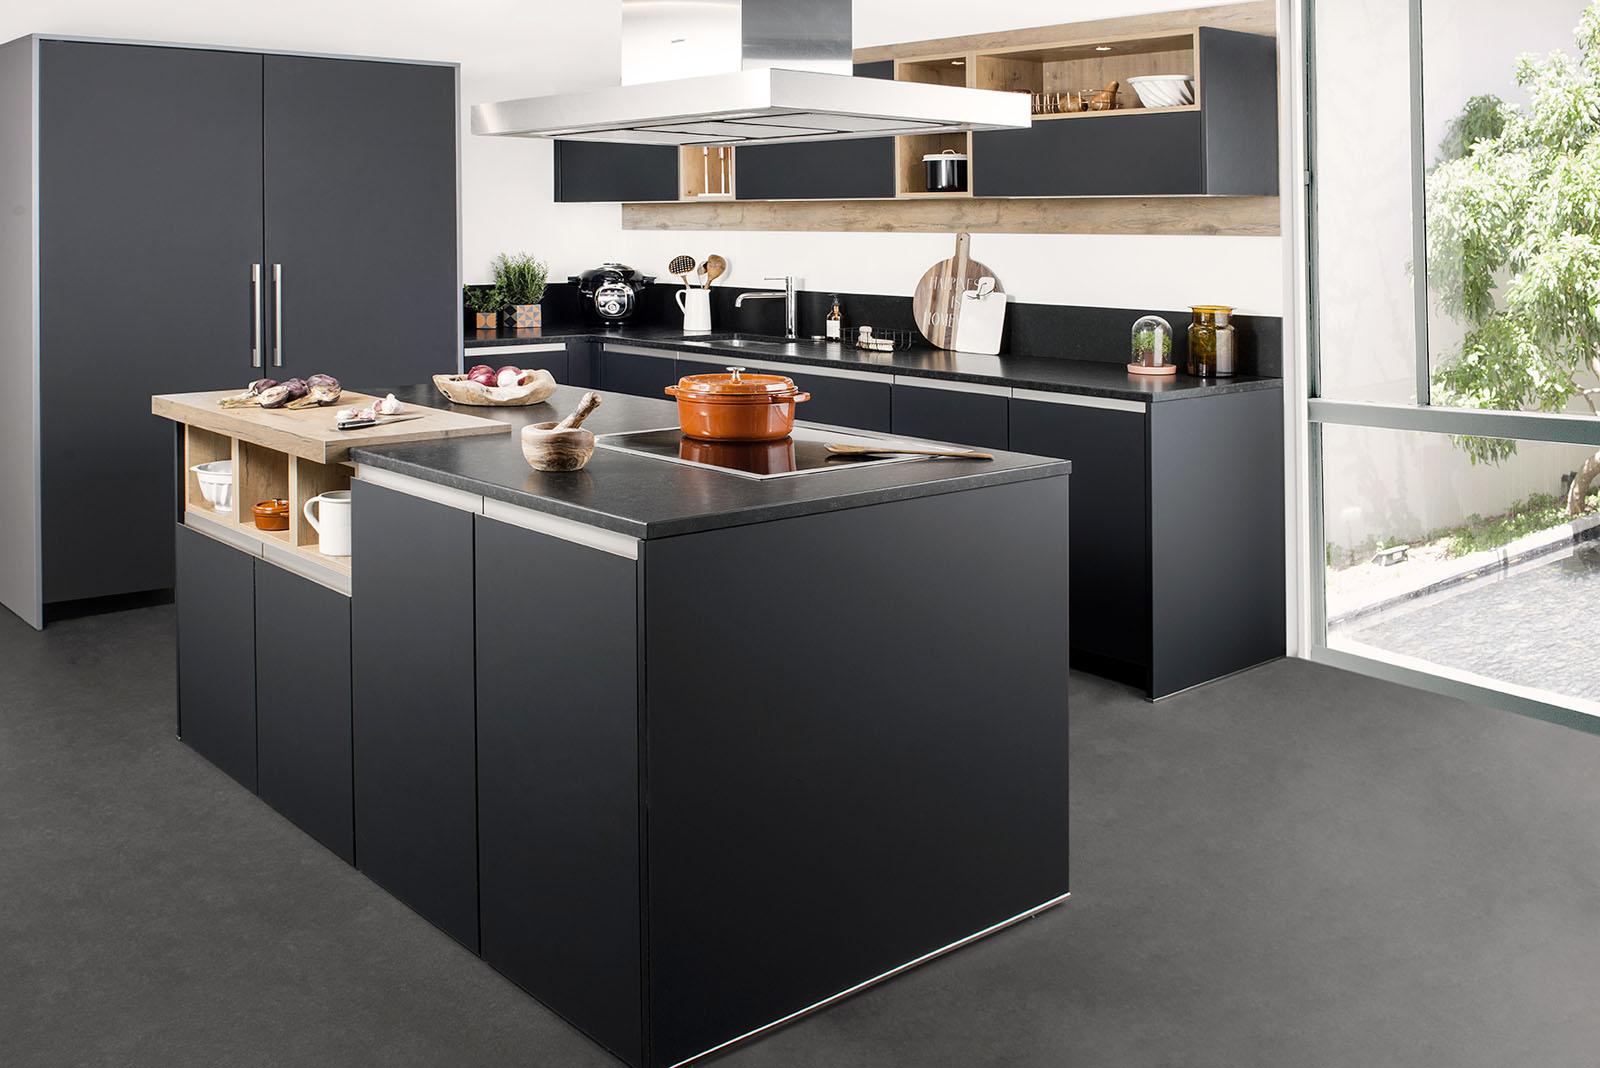 votre cuisine quip e sur mesure 100 personnalis e. Black Bedroom Furniture Sets. Home Design Ideas